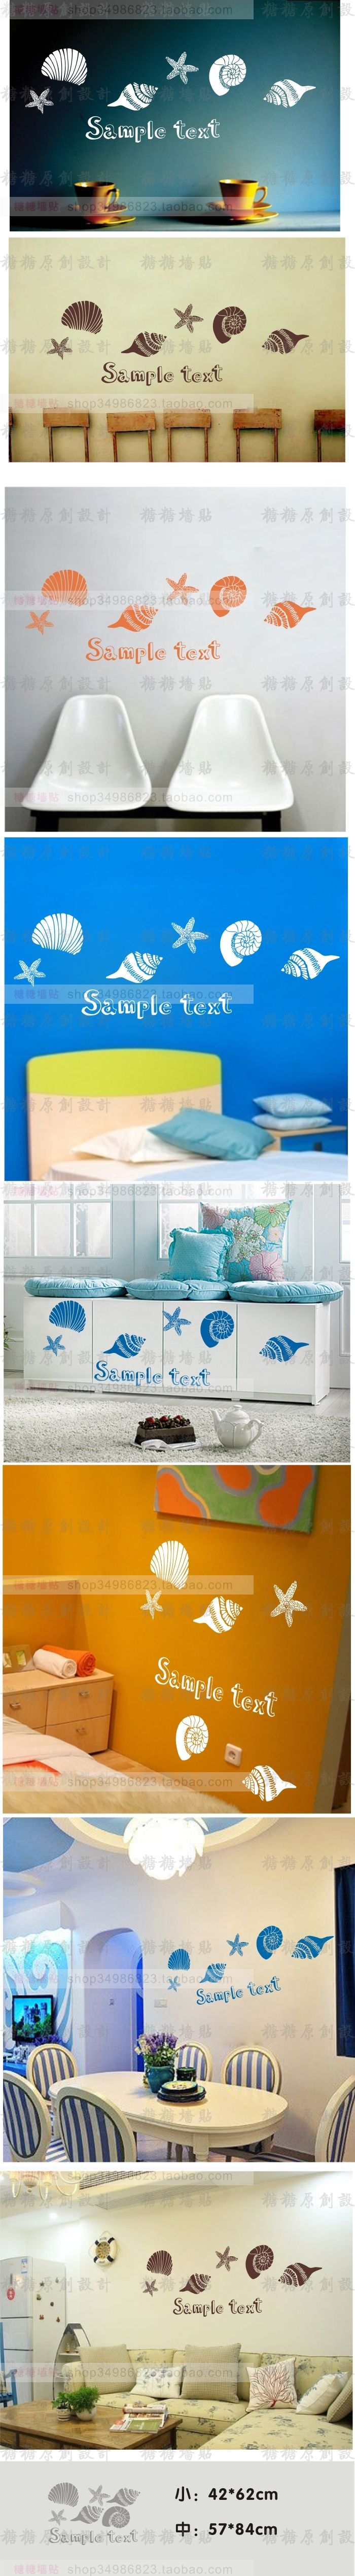 Free Shipping Wholesale and Retail Large conch sea snail Mediterranean Style Wall Stickers Wall Decals Decal Home Decor-inWall Stickers from Home & Garden on Aliexpress.com | Alibaba Group